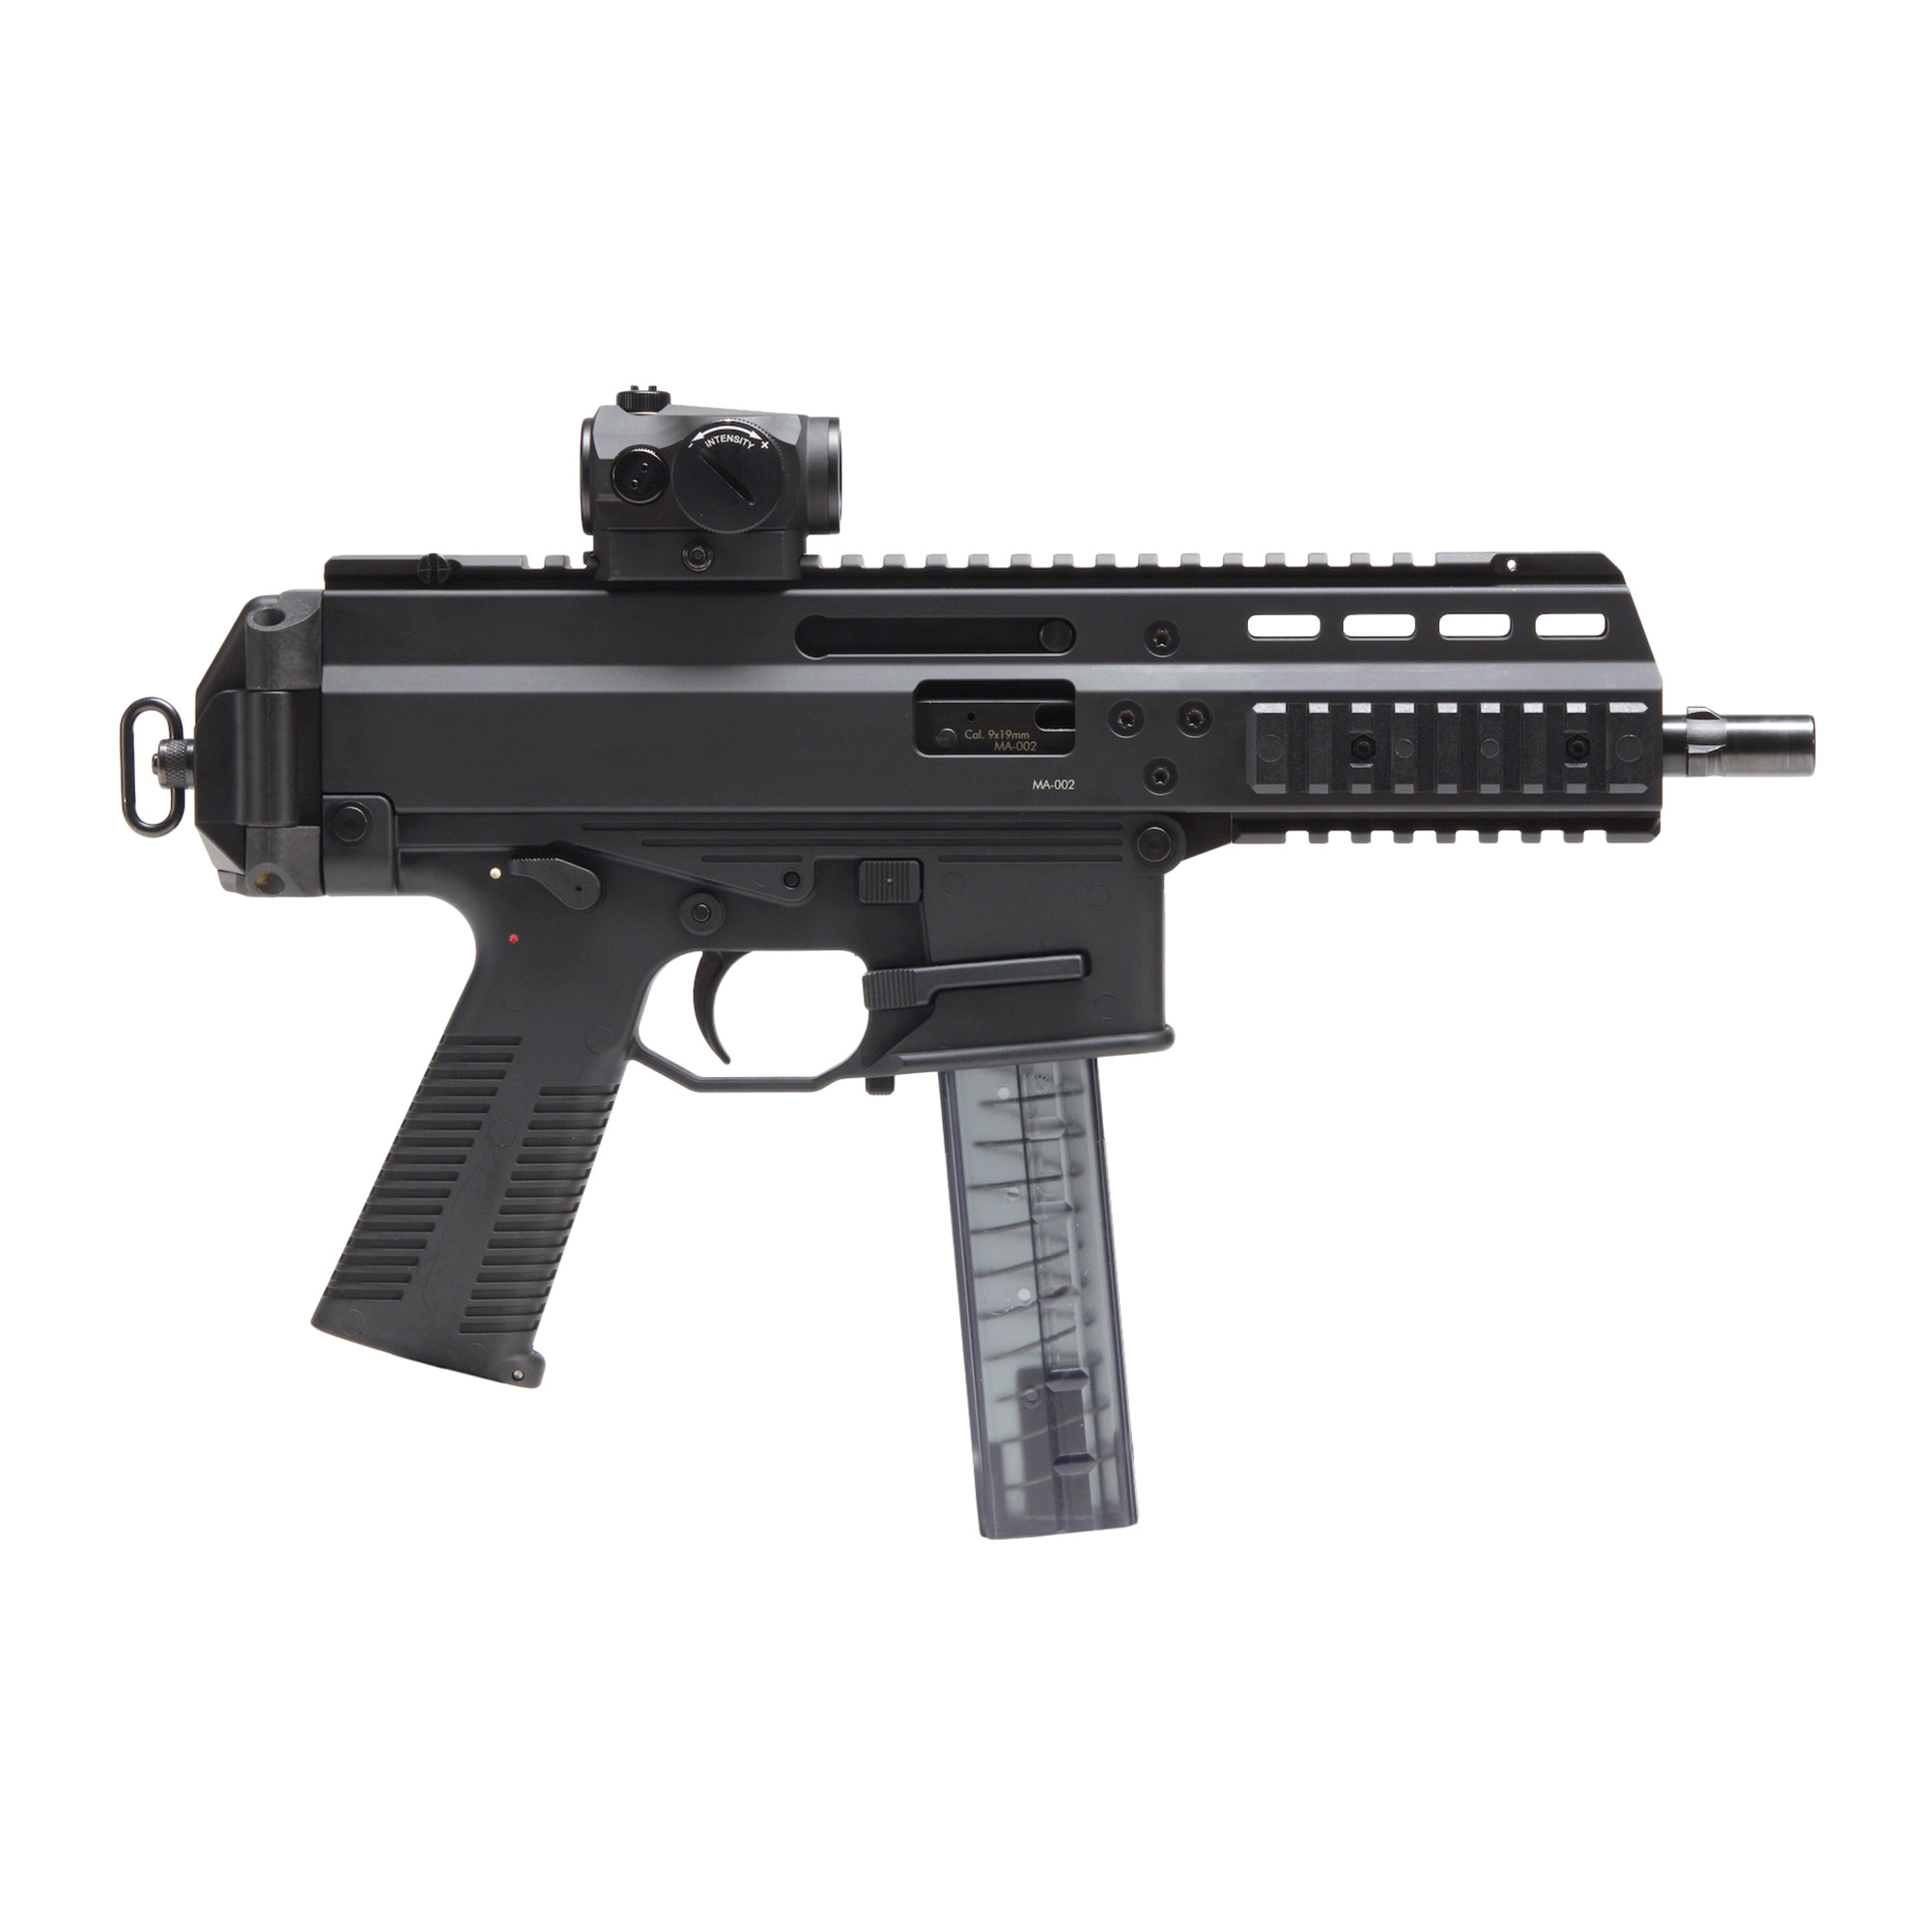 "B&t Apc9 Pstl 9mm 7"" 30rd Blk"